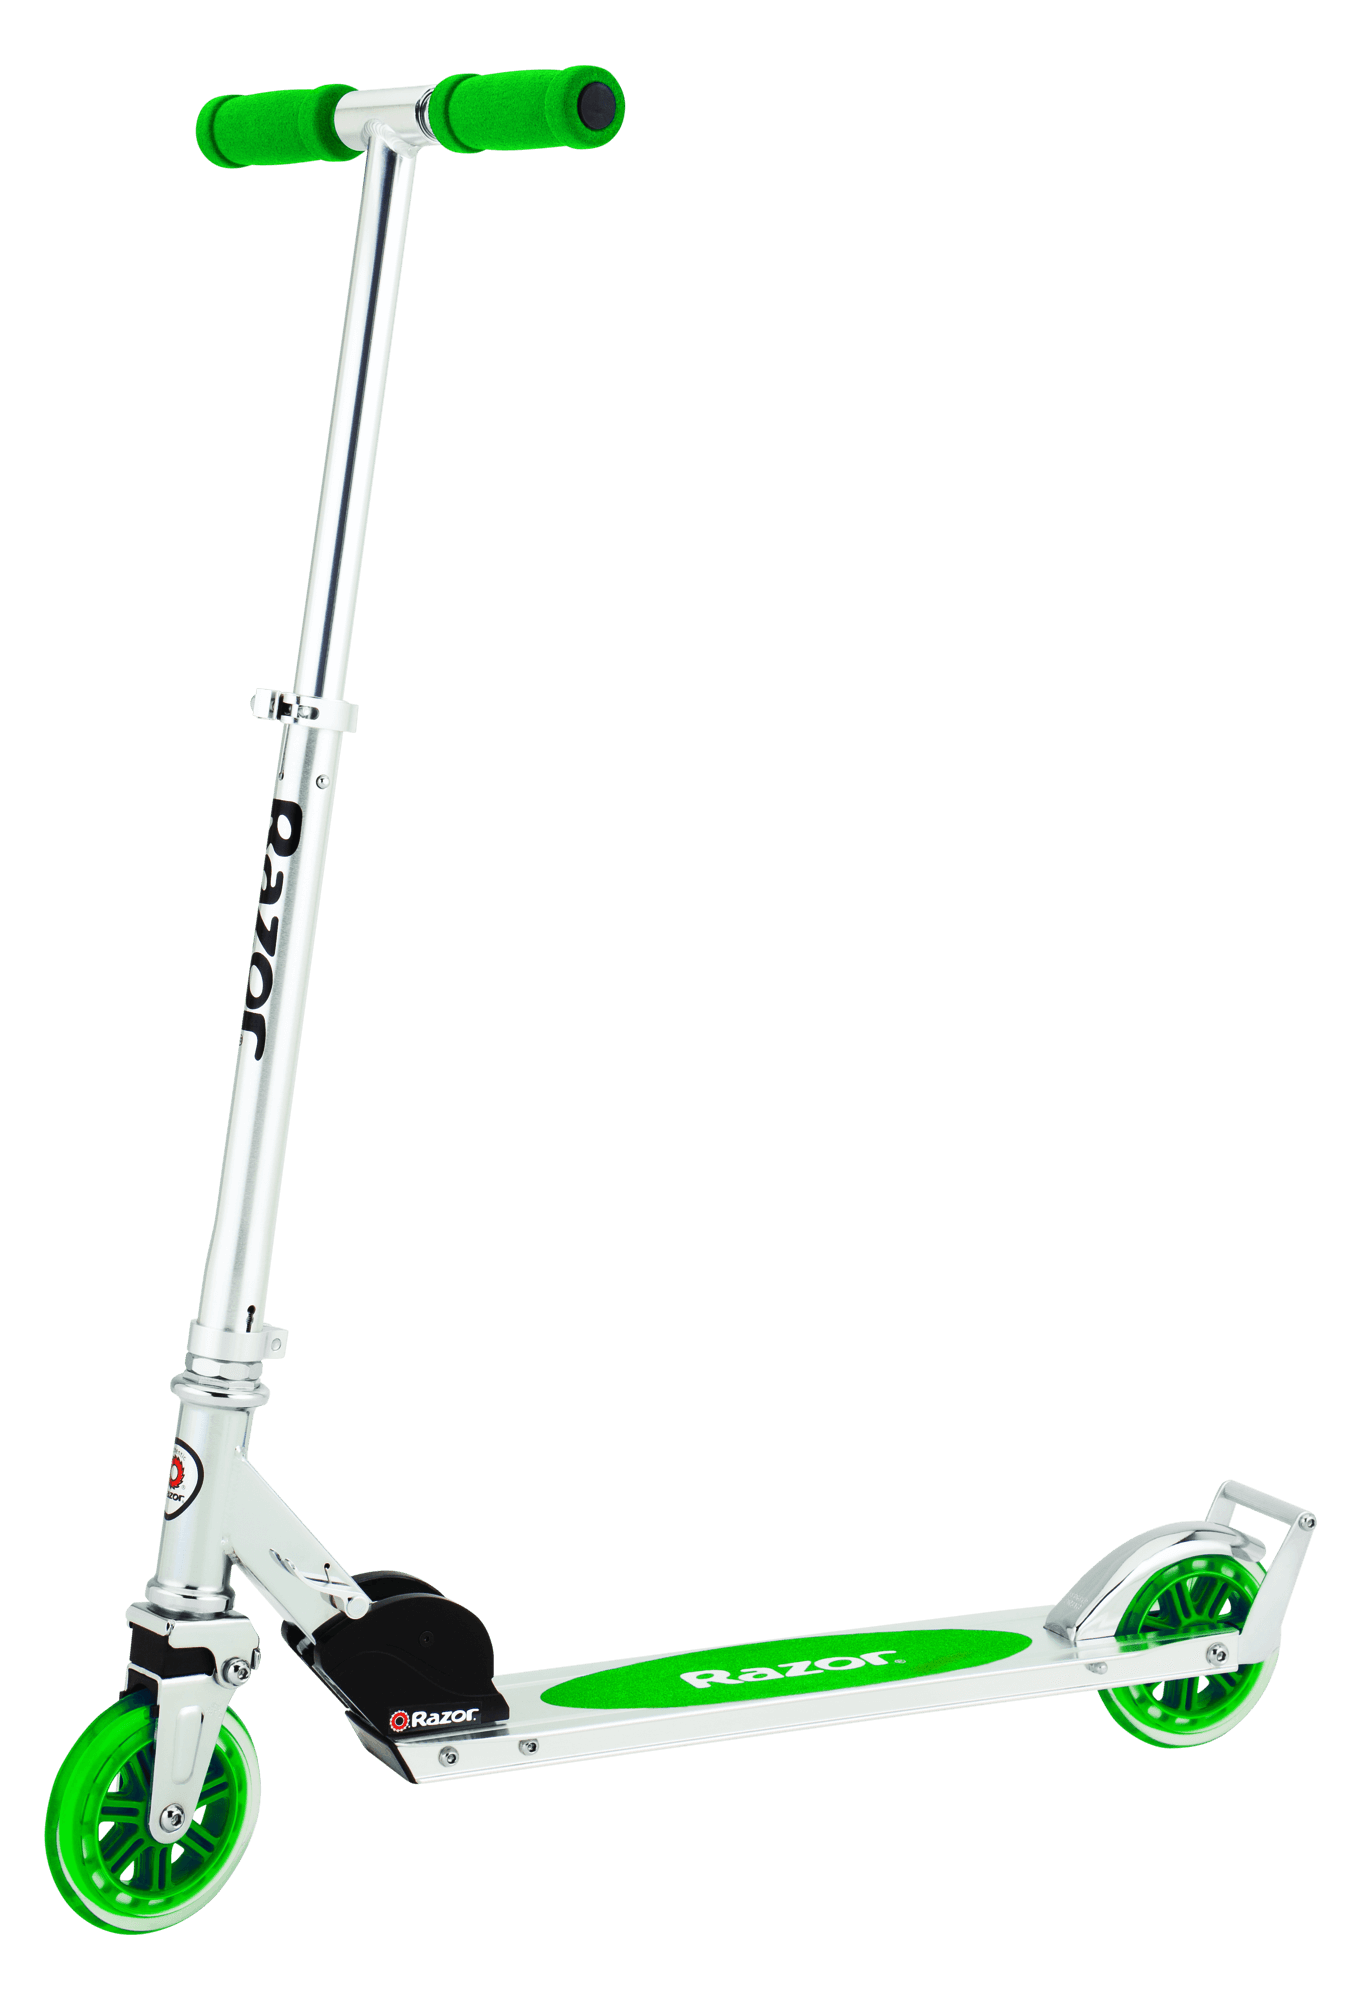 A3 Scooter.